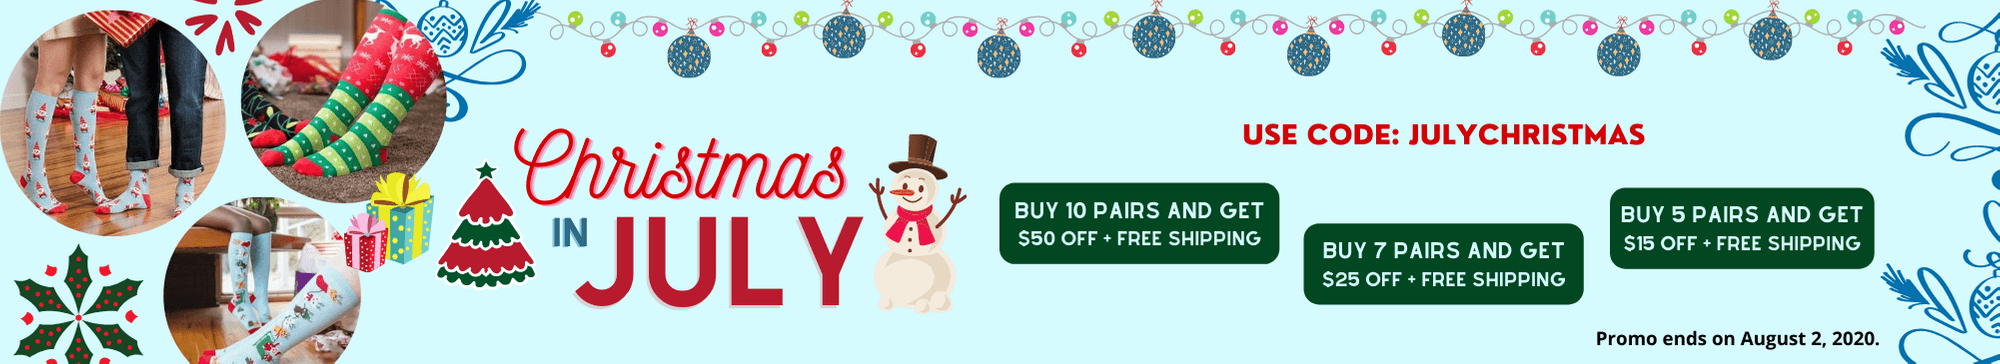 copy-of-christmas-in-july-1-.png